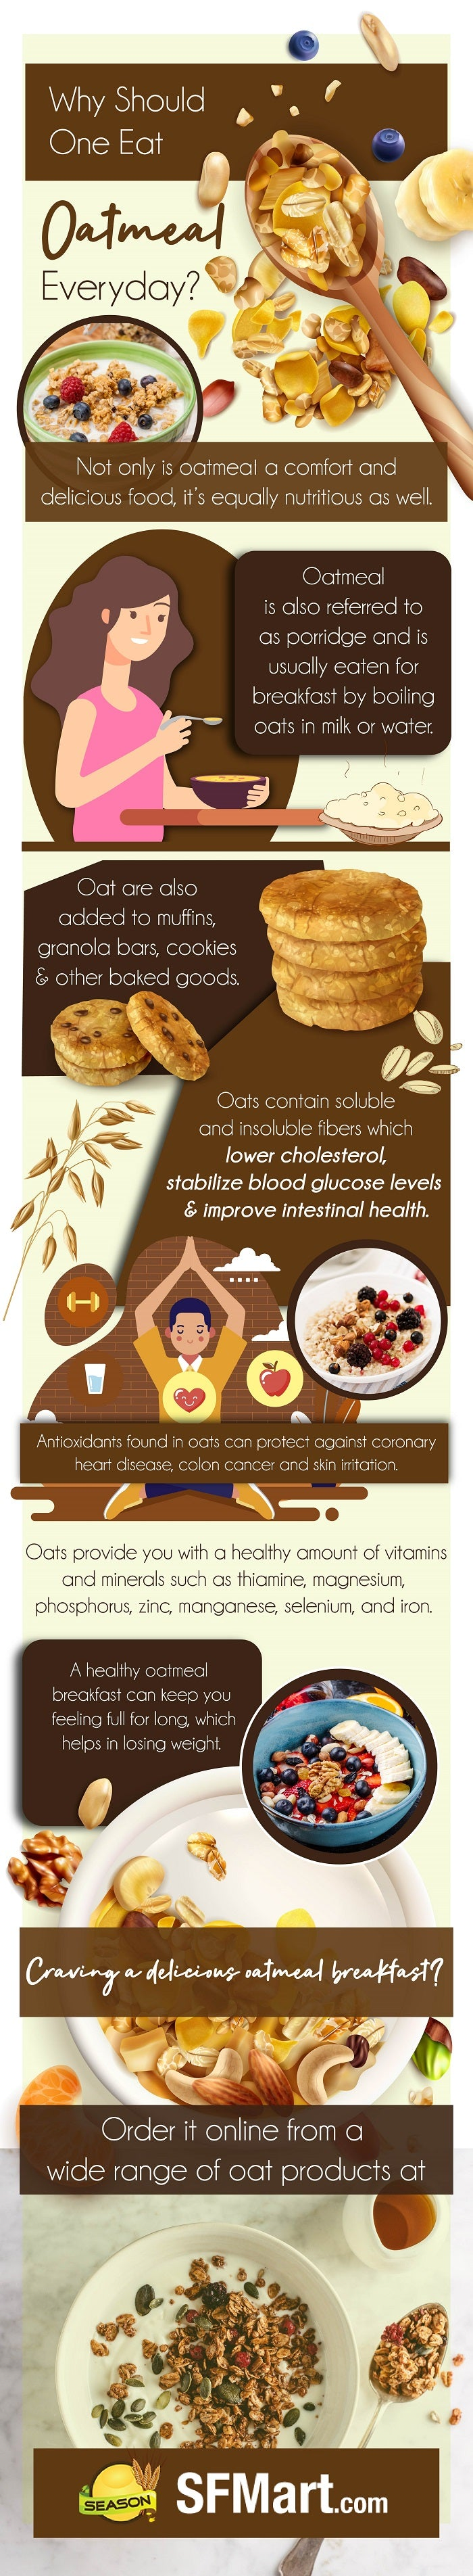 Why Should One Eat Oatmeal Everyday?